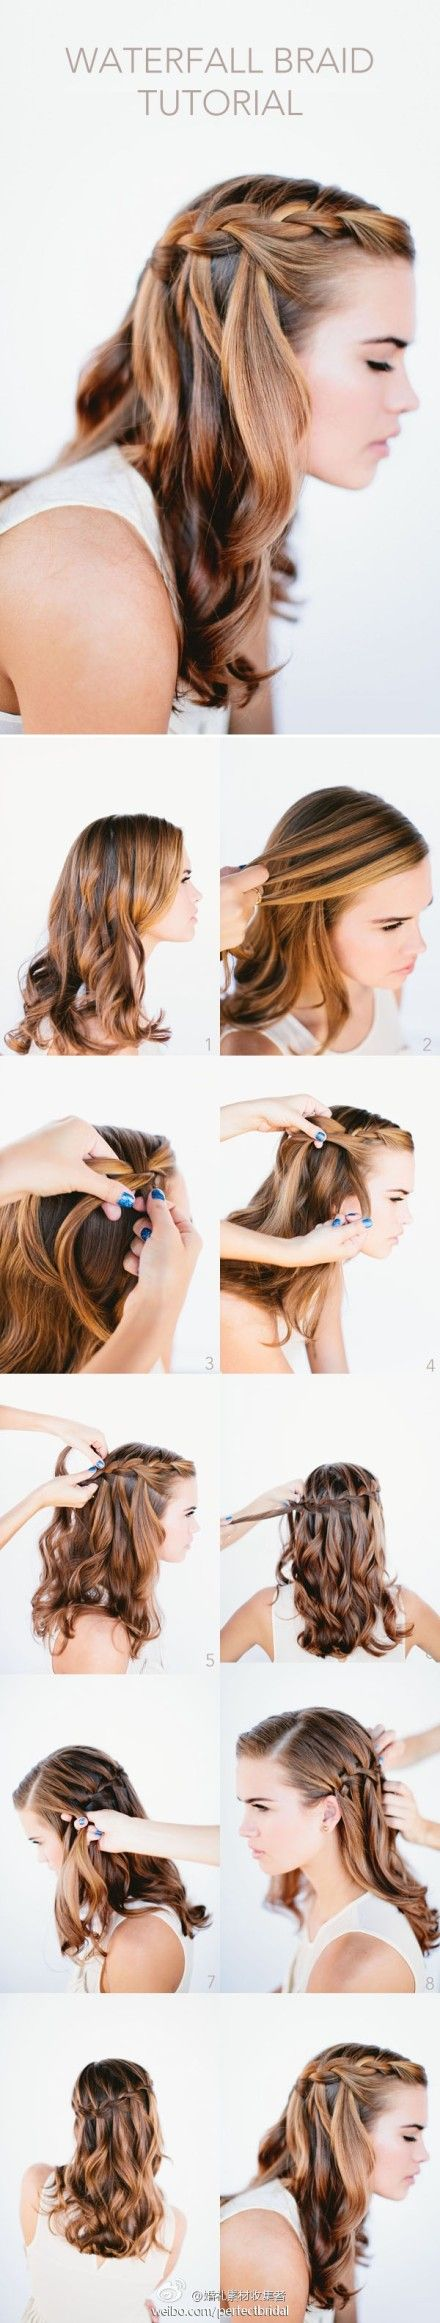 Five-Minute Hairstyles For Busy Mornings